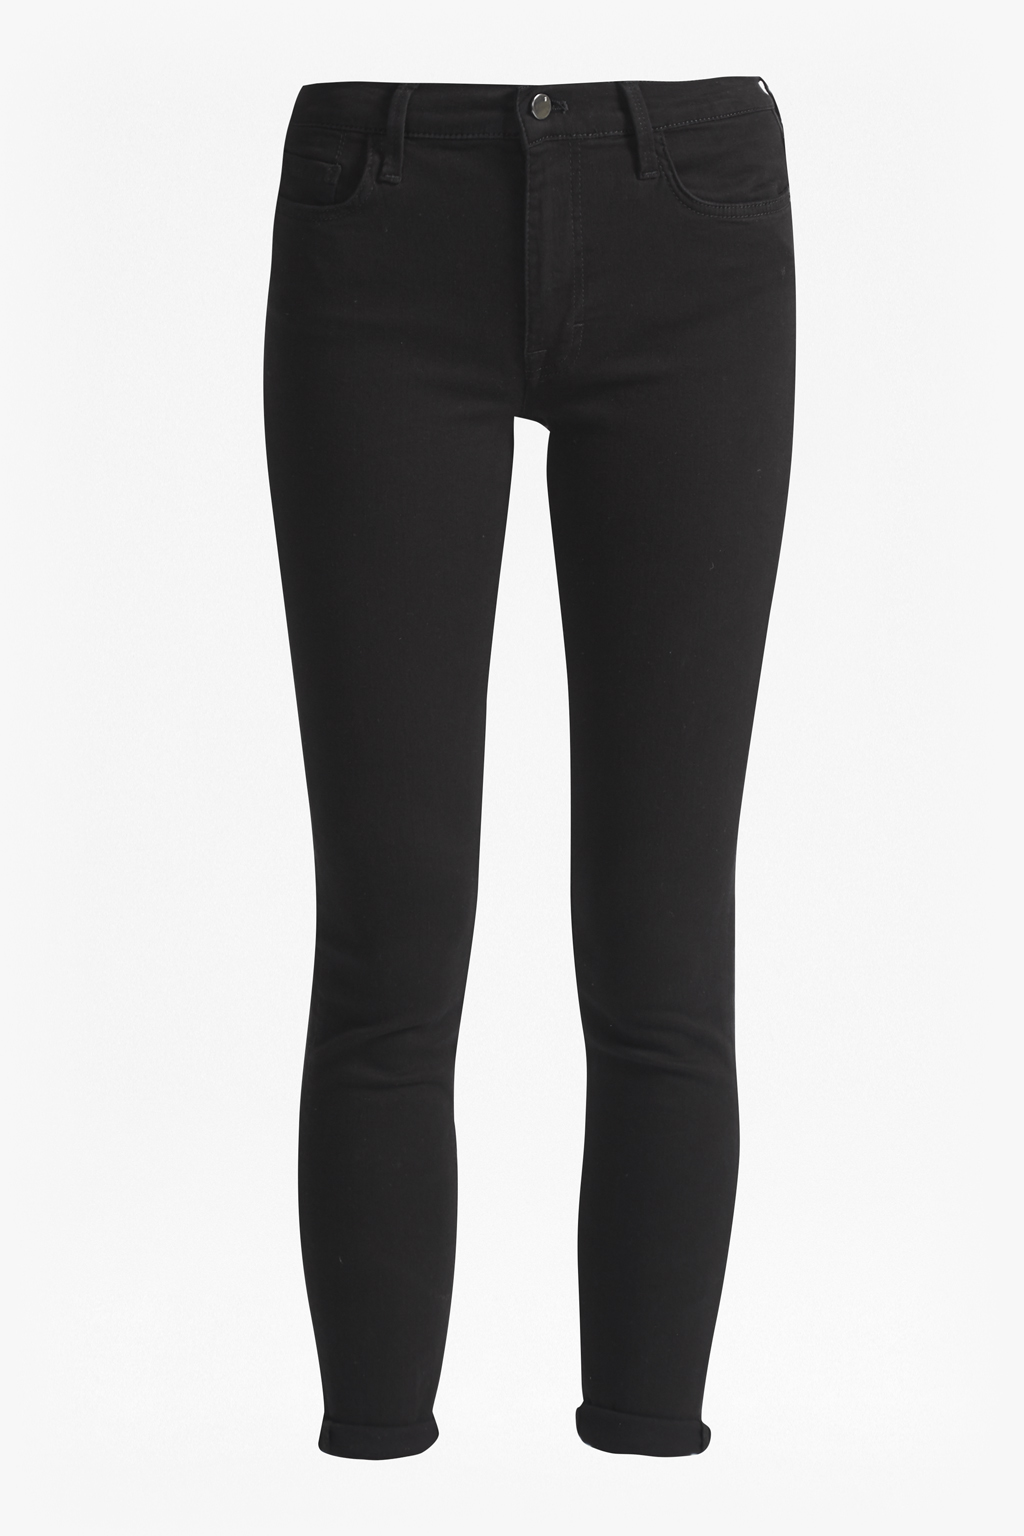 Womens Rebound Trousers French Connection Cheap Sale Clearance Store New Cheap Online Clearance Real Collections 5t9lu